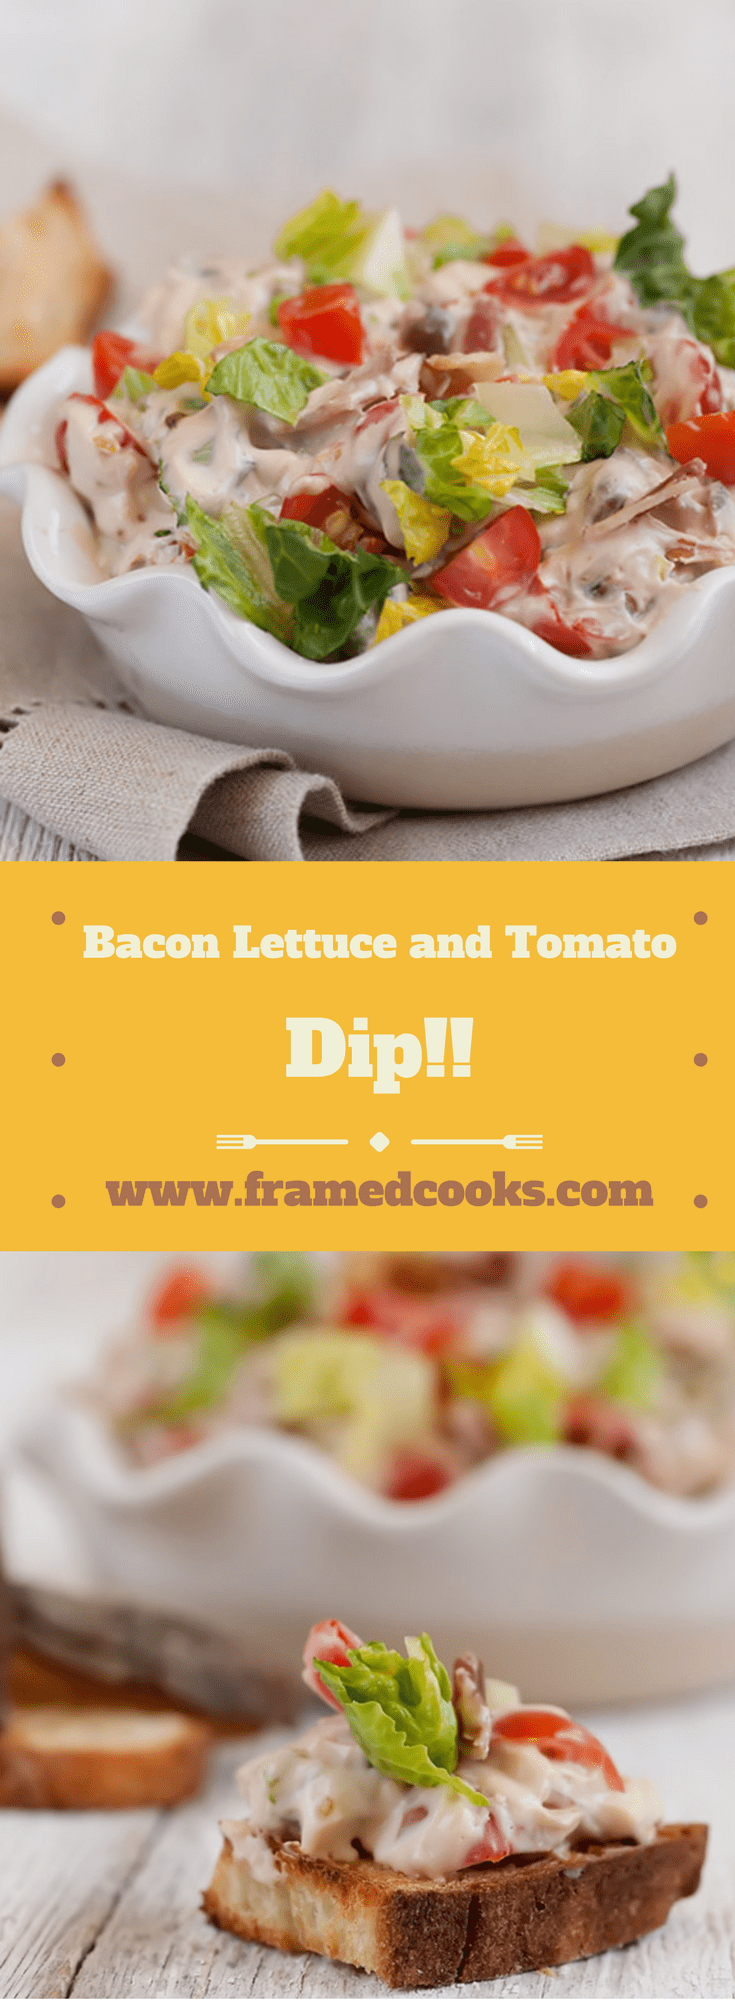 This fast and hearty dip combines all the elements of your favorite bacon lettuce and tomato sandwich in easy scoopable and spreadable form!